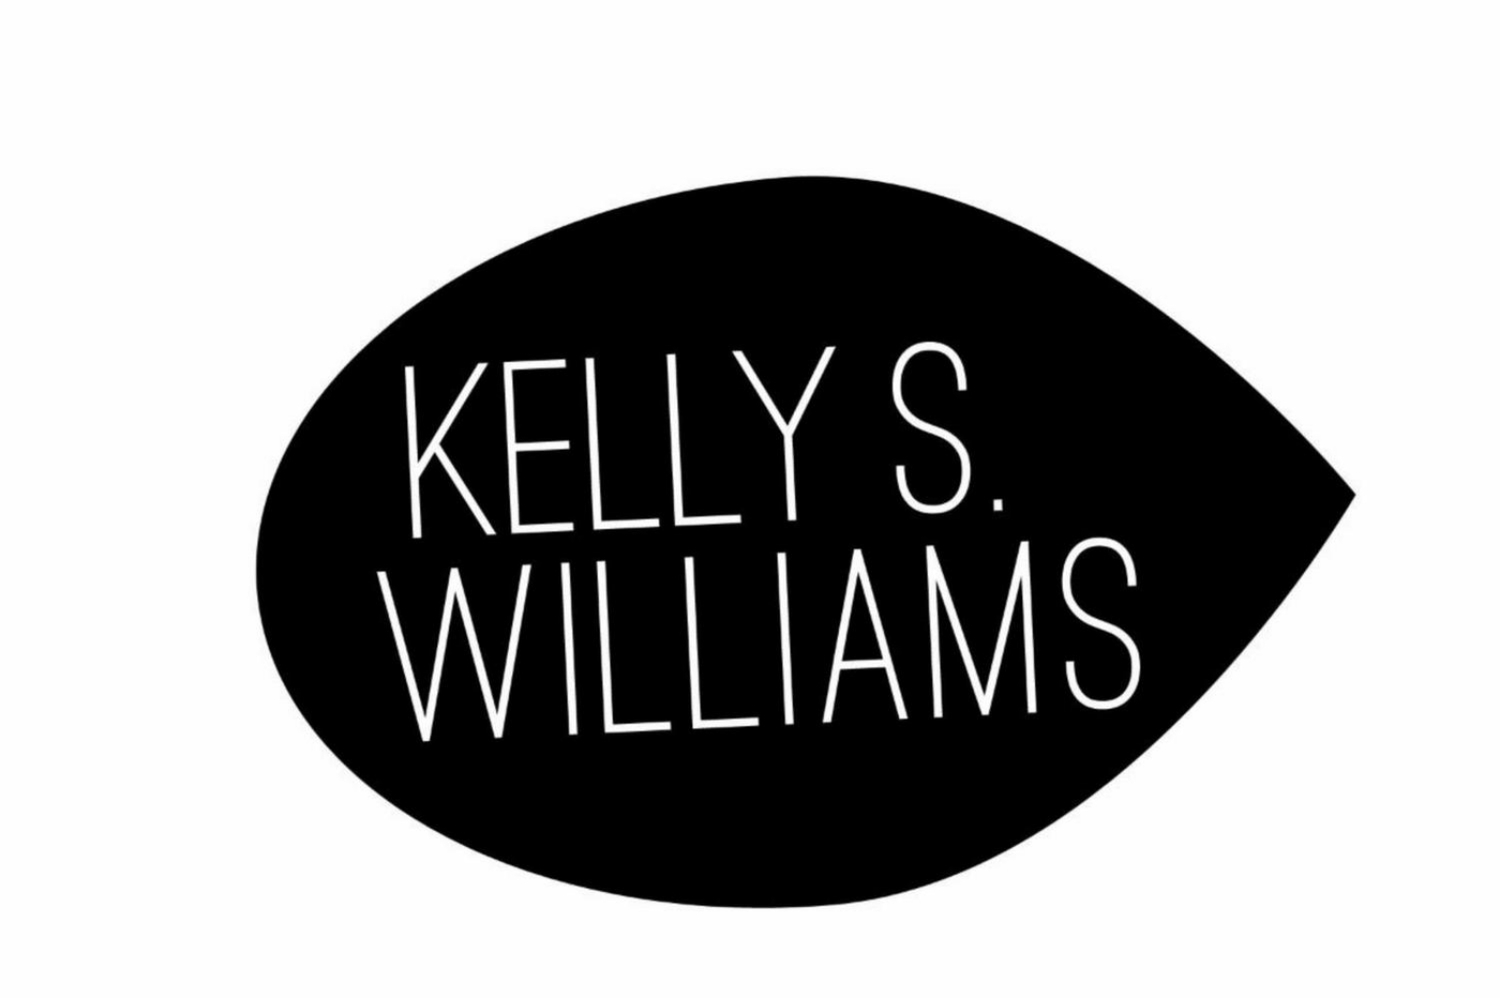 KELLY S. WILLIAMS